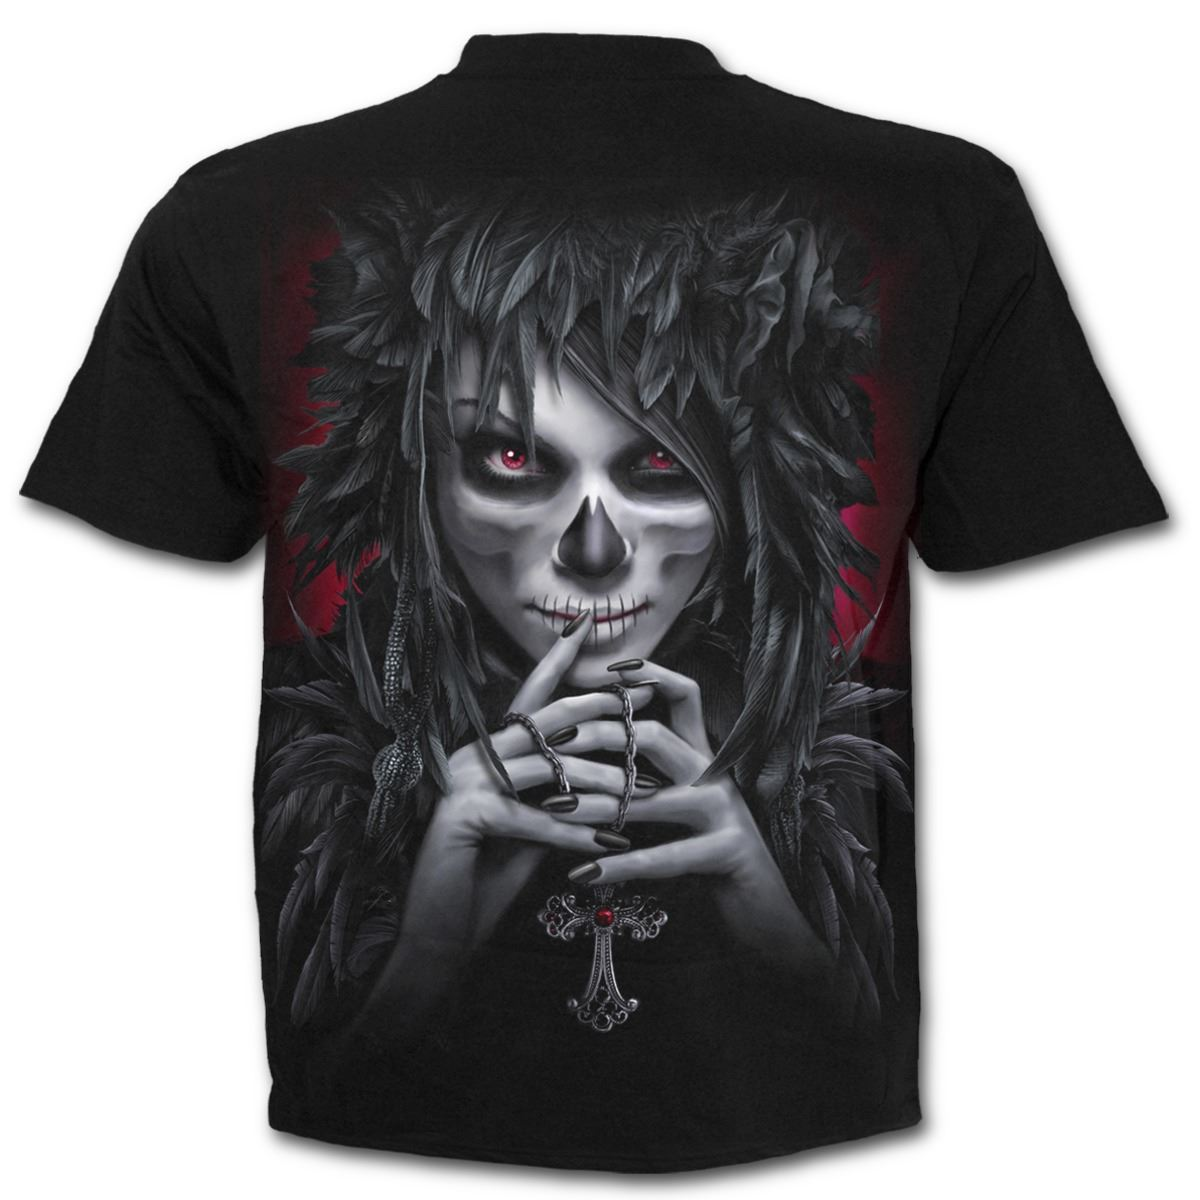 Spiral-Direct-Day-Of-The-Goth-Skeleton-Zombie-Black-Short-Sleeved-T-Shirt thumbnail 4